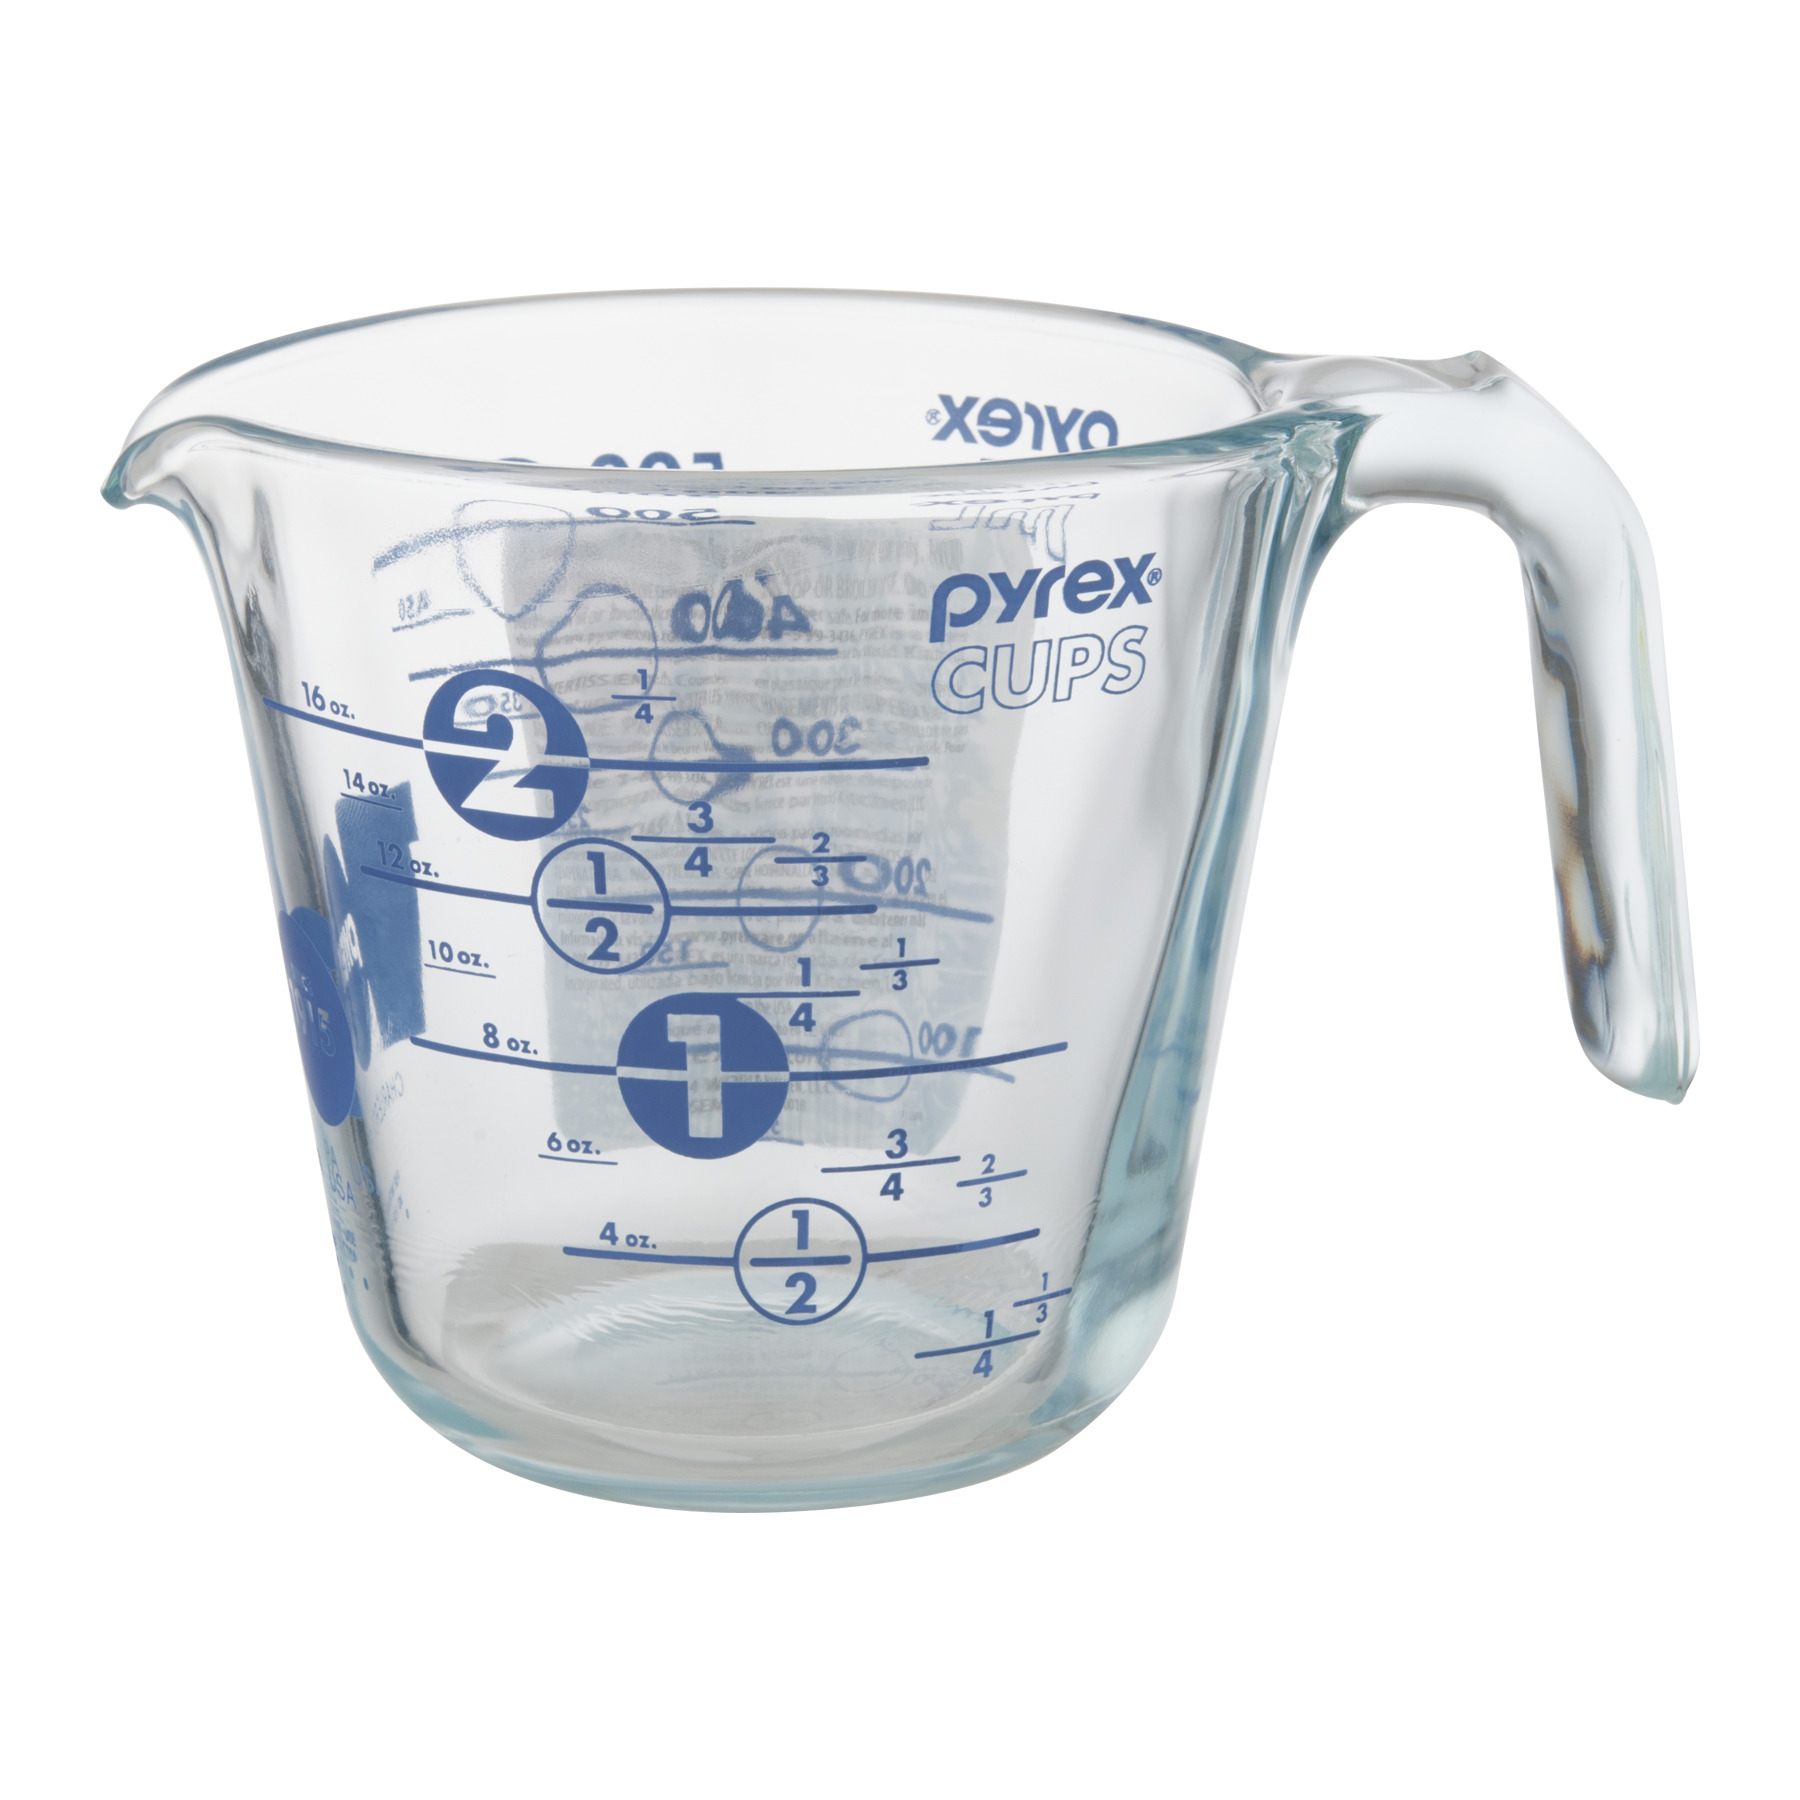 Pyrex 2 Cup Measuring Cup, 1.0 CT